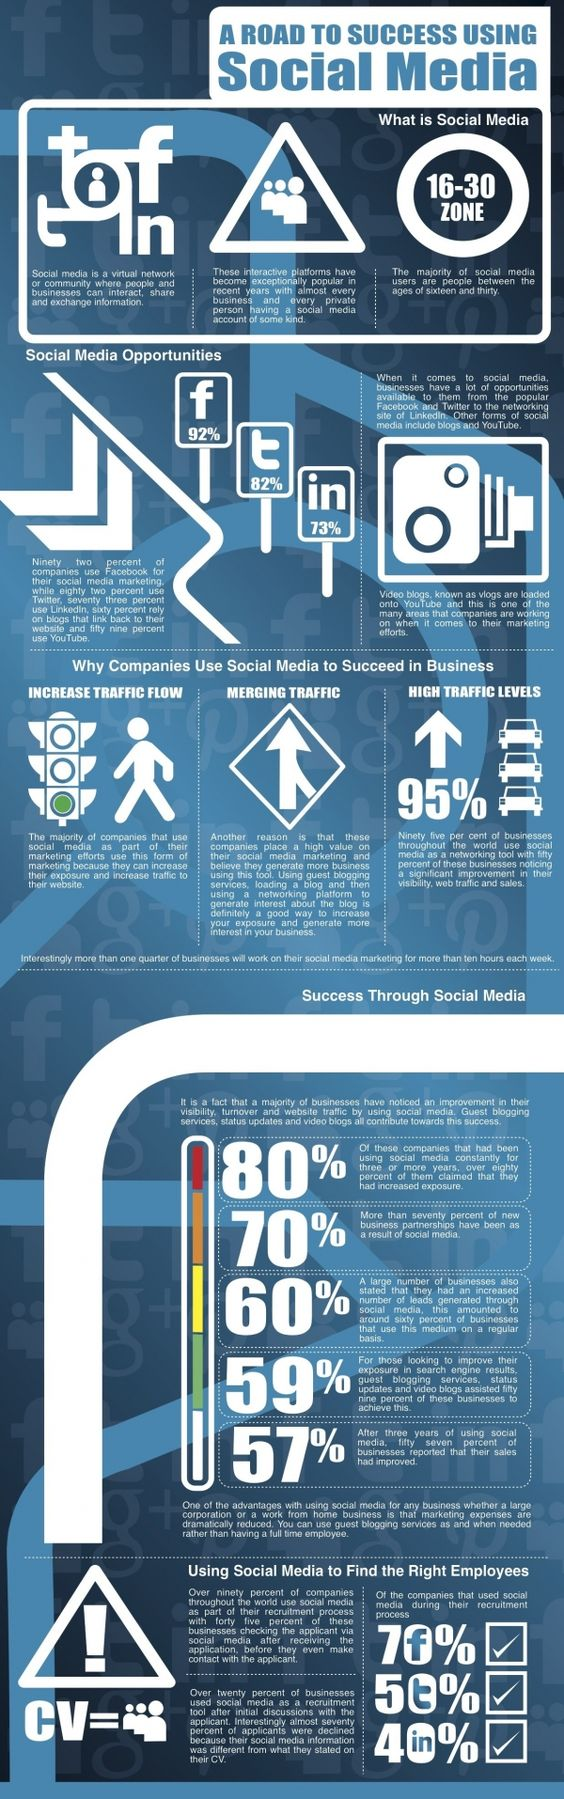 the-road-to-success-social-media-infographic